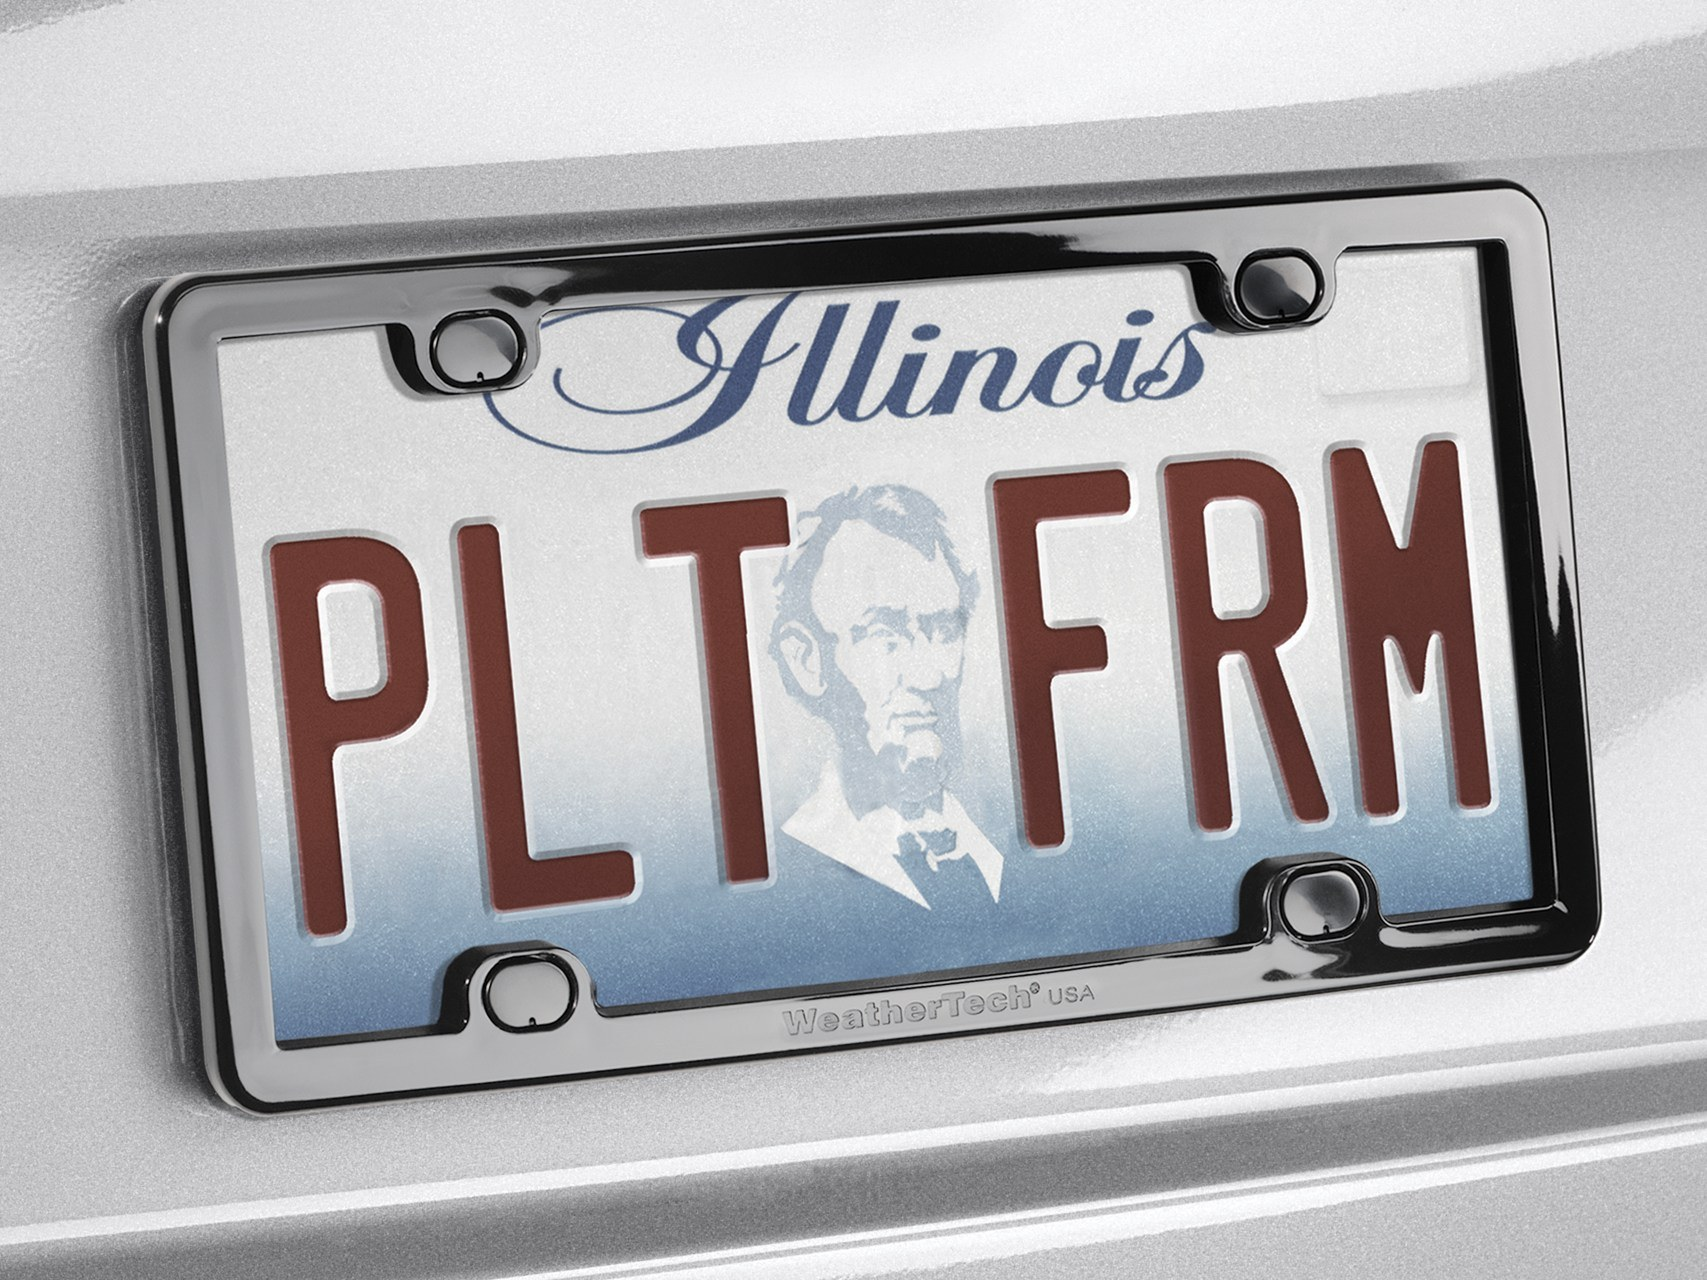 plateframe license